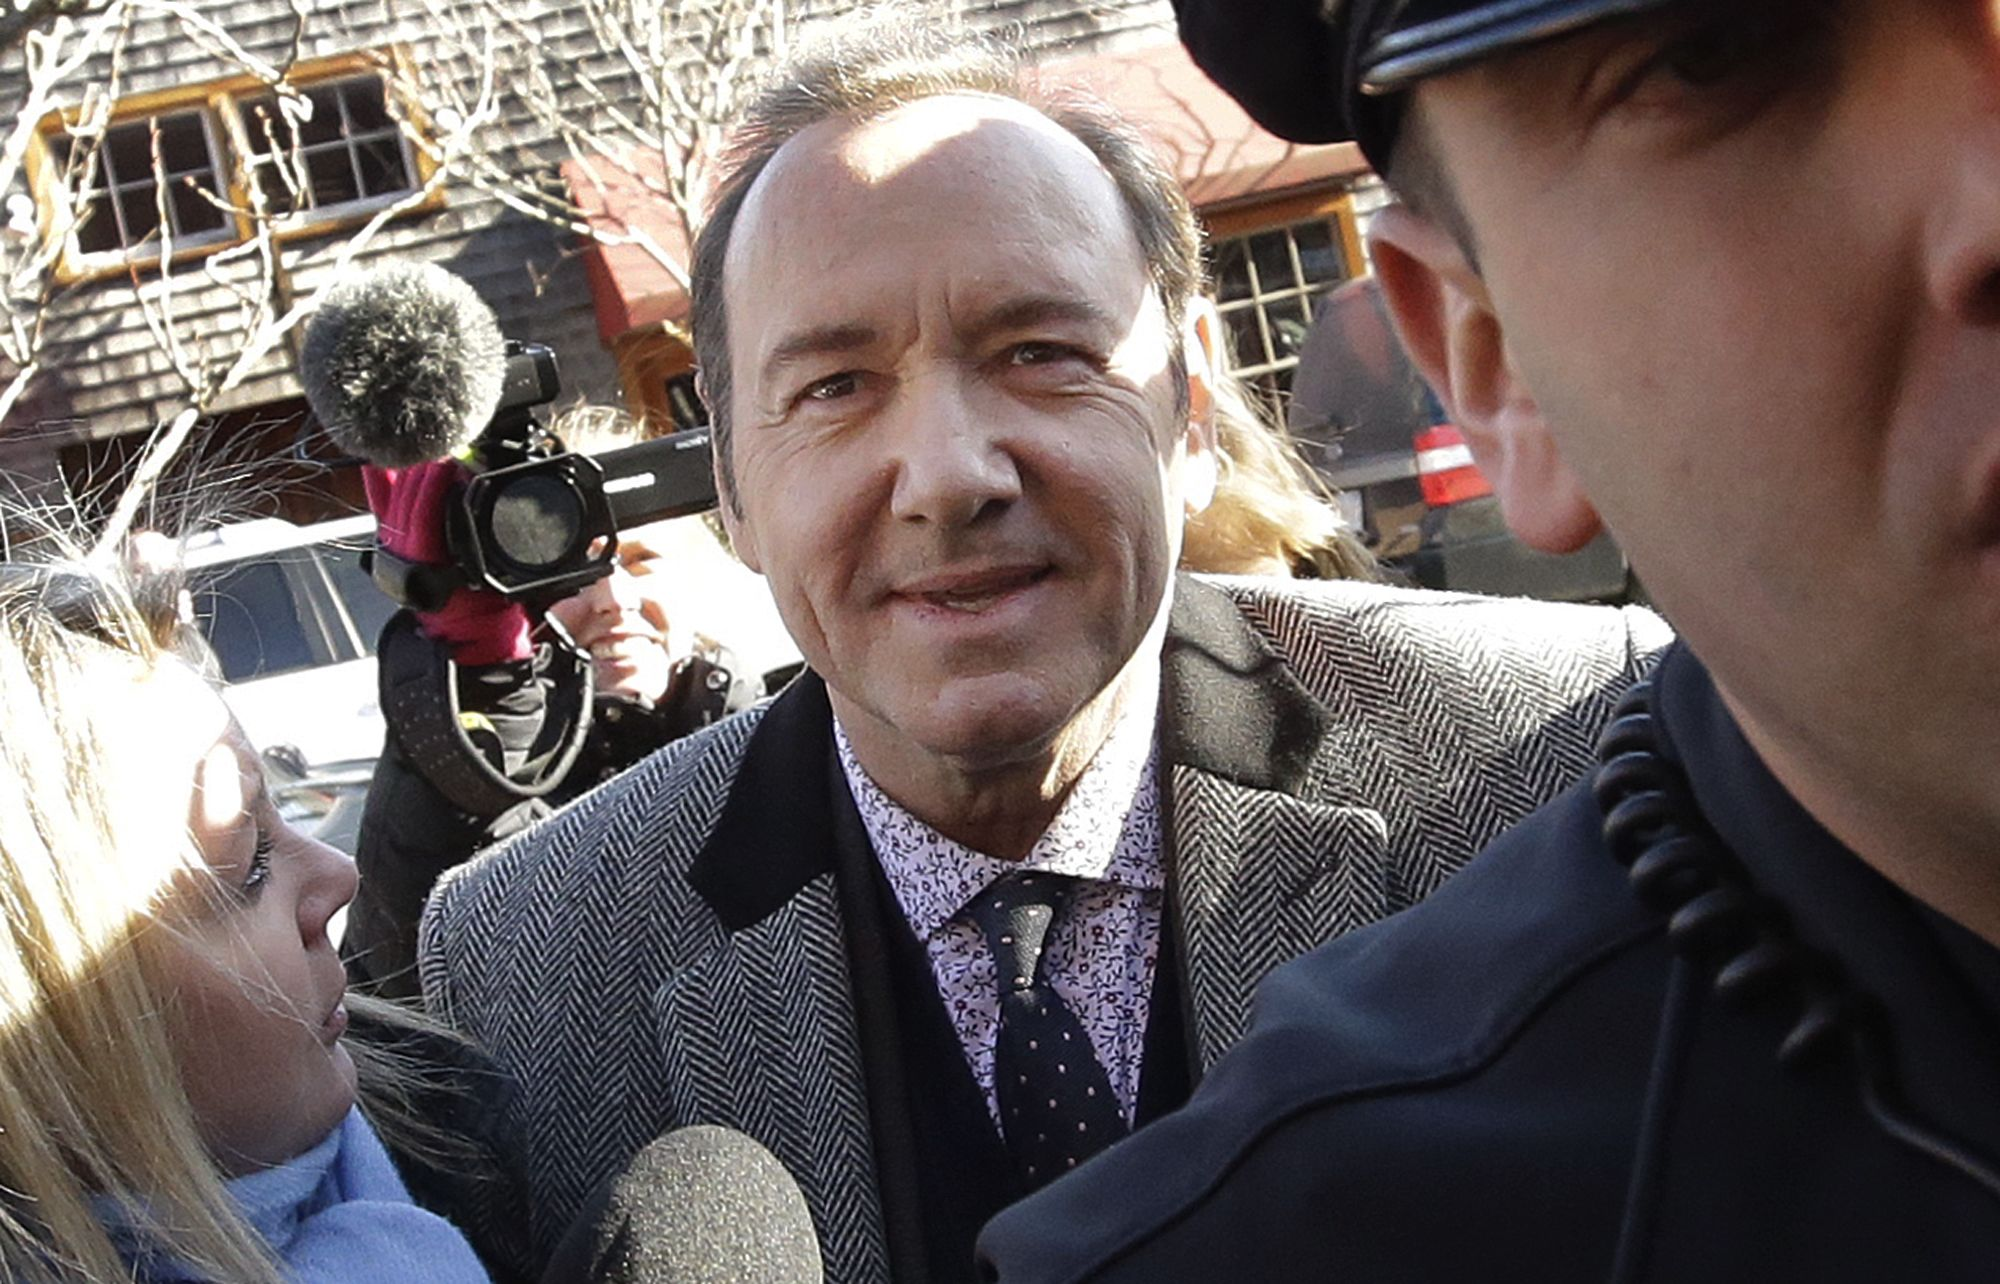 Kevin Spacey groping lawsuit dropped by accuser